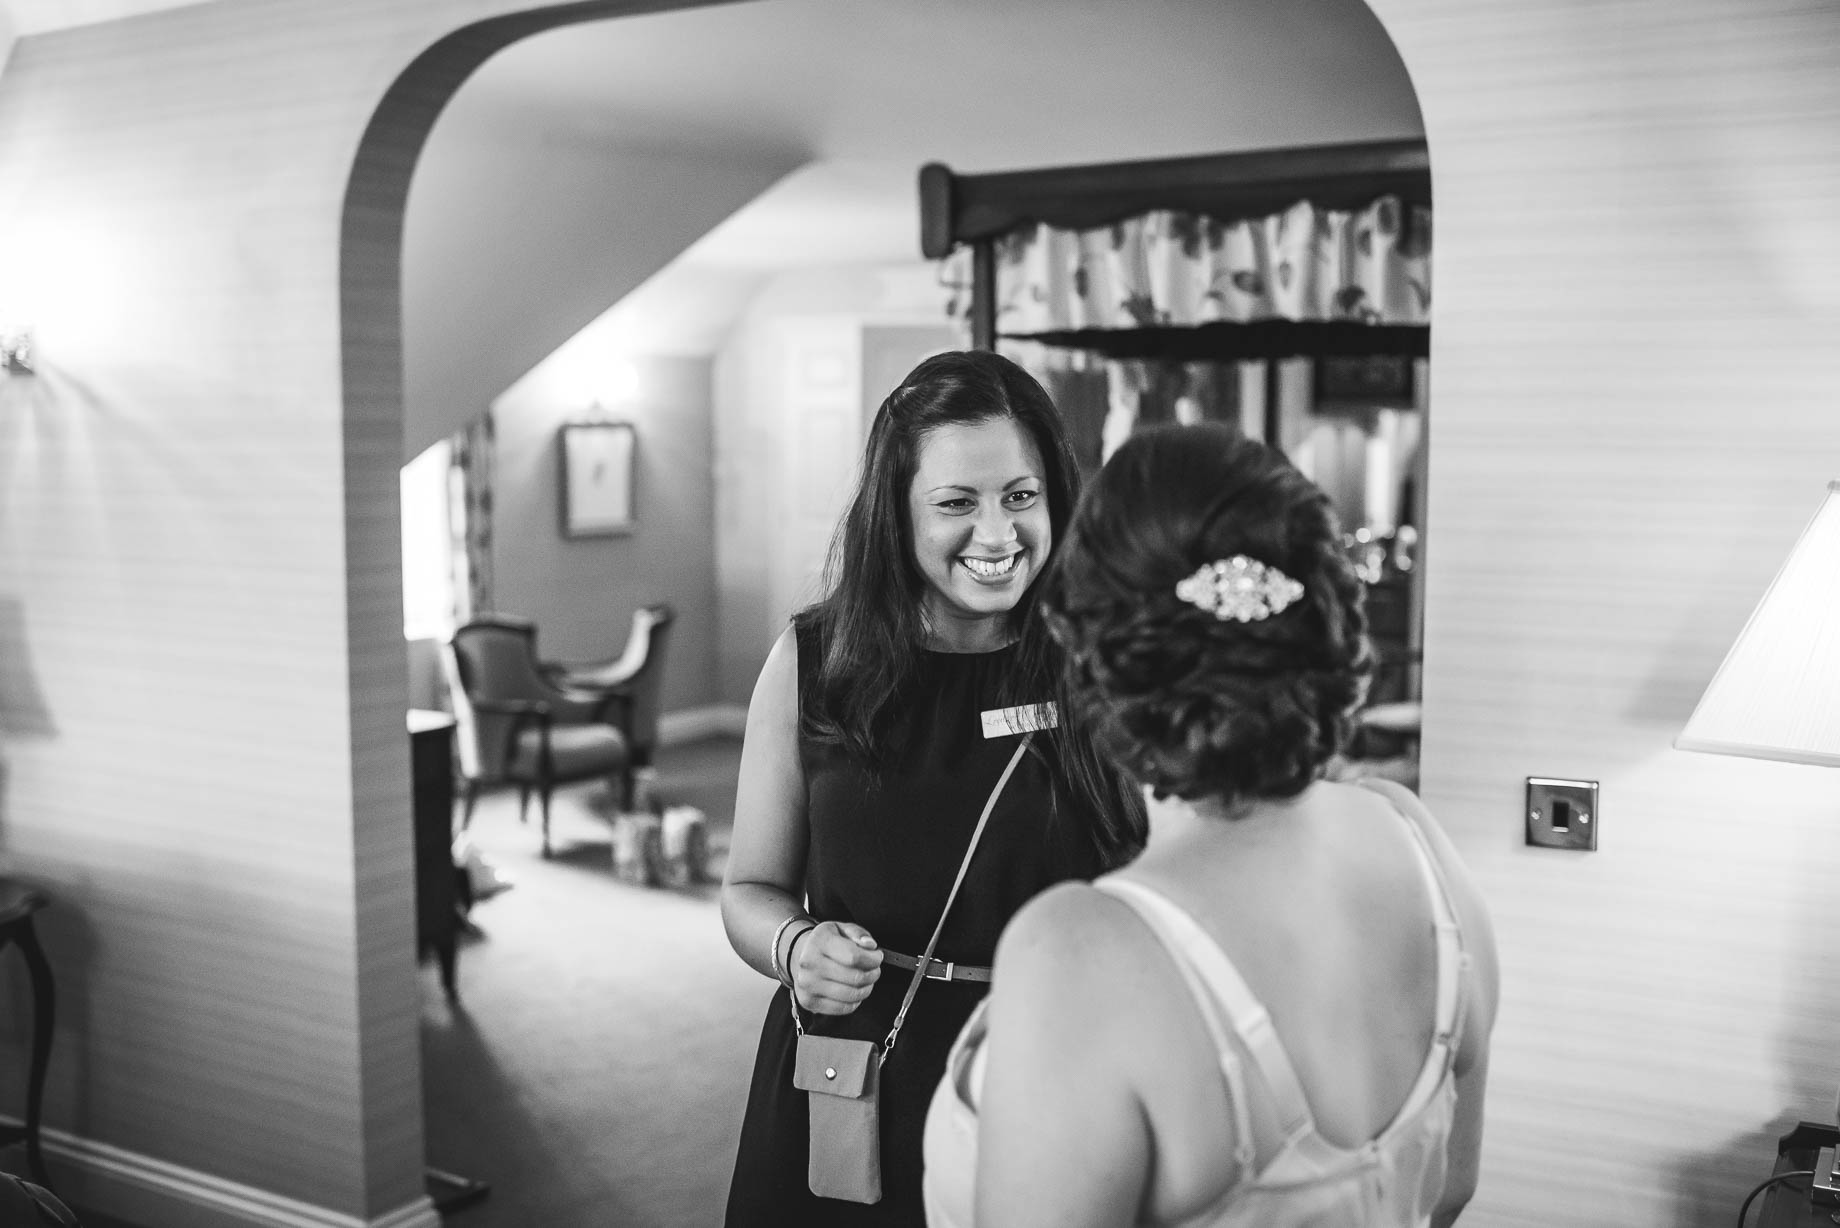 Luton Hoo wedding photography by Guy Collier Photography - Lauren and Gem (22 of 178)